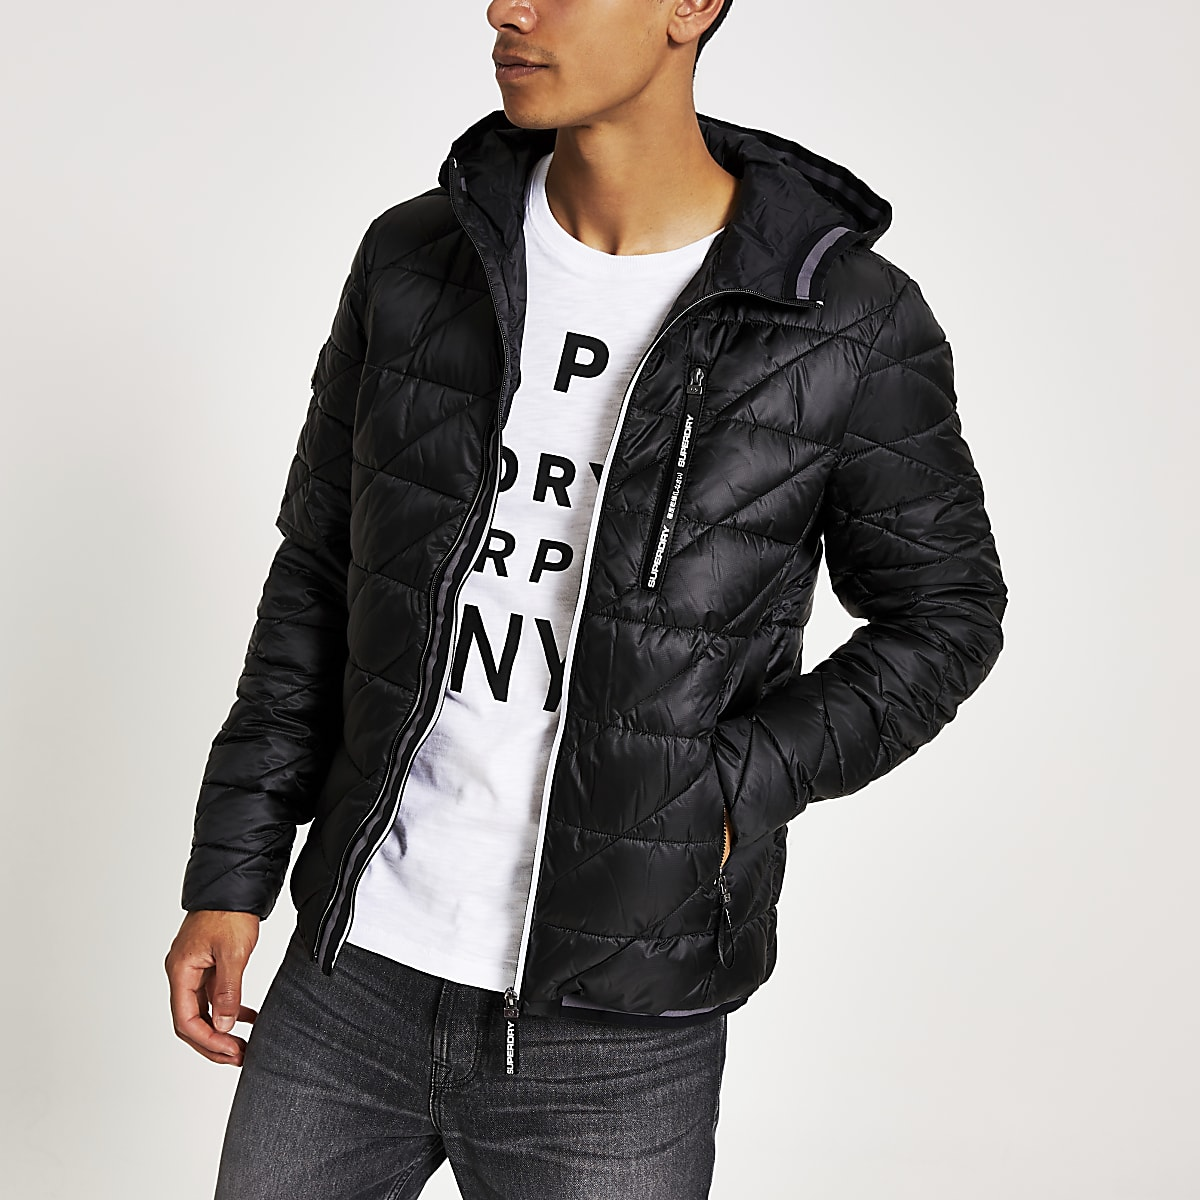 Superdry black quilted jacket